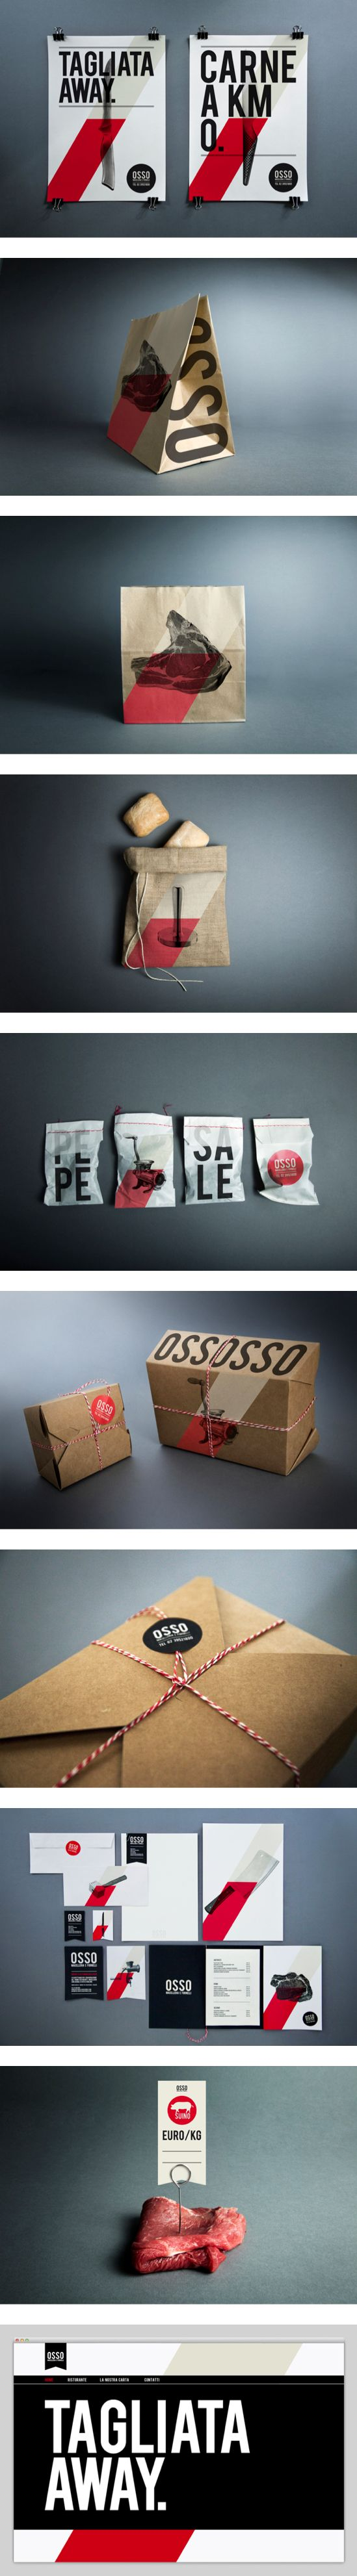 OSSO, a butcher shop in Milan, by Luca Fontana. Nice packaging and branding, application to all mediums is well thought out. I like it a lot!